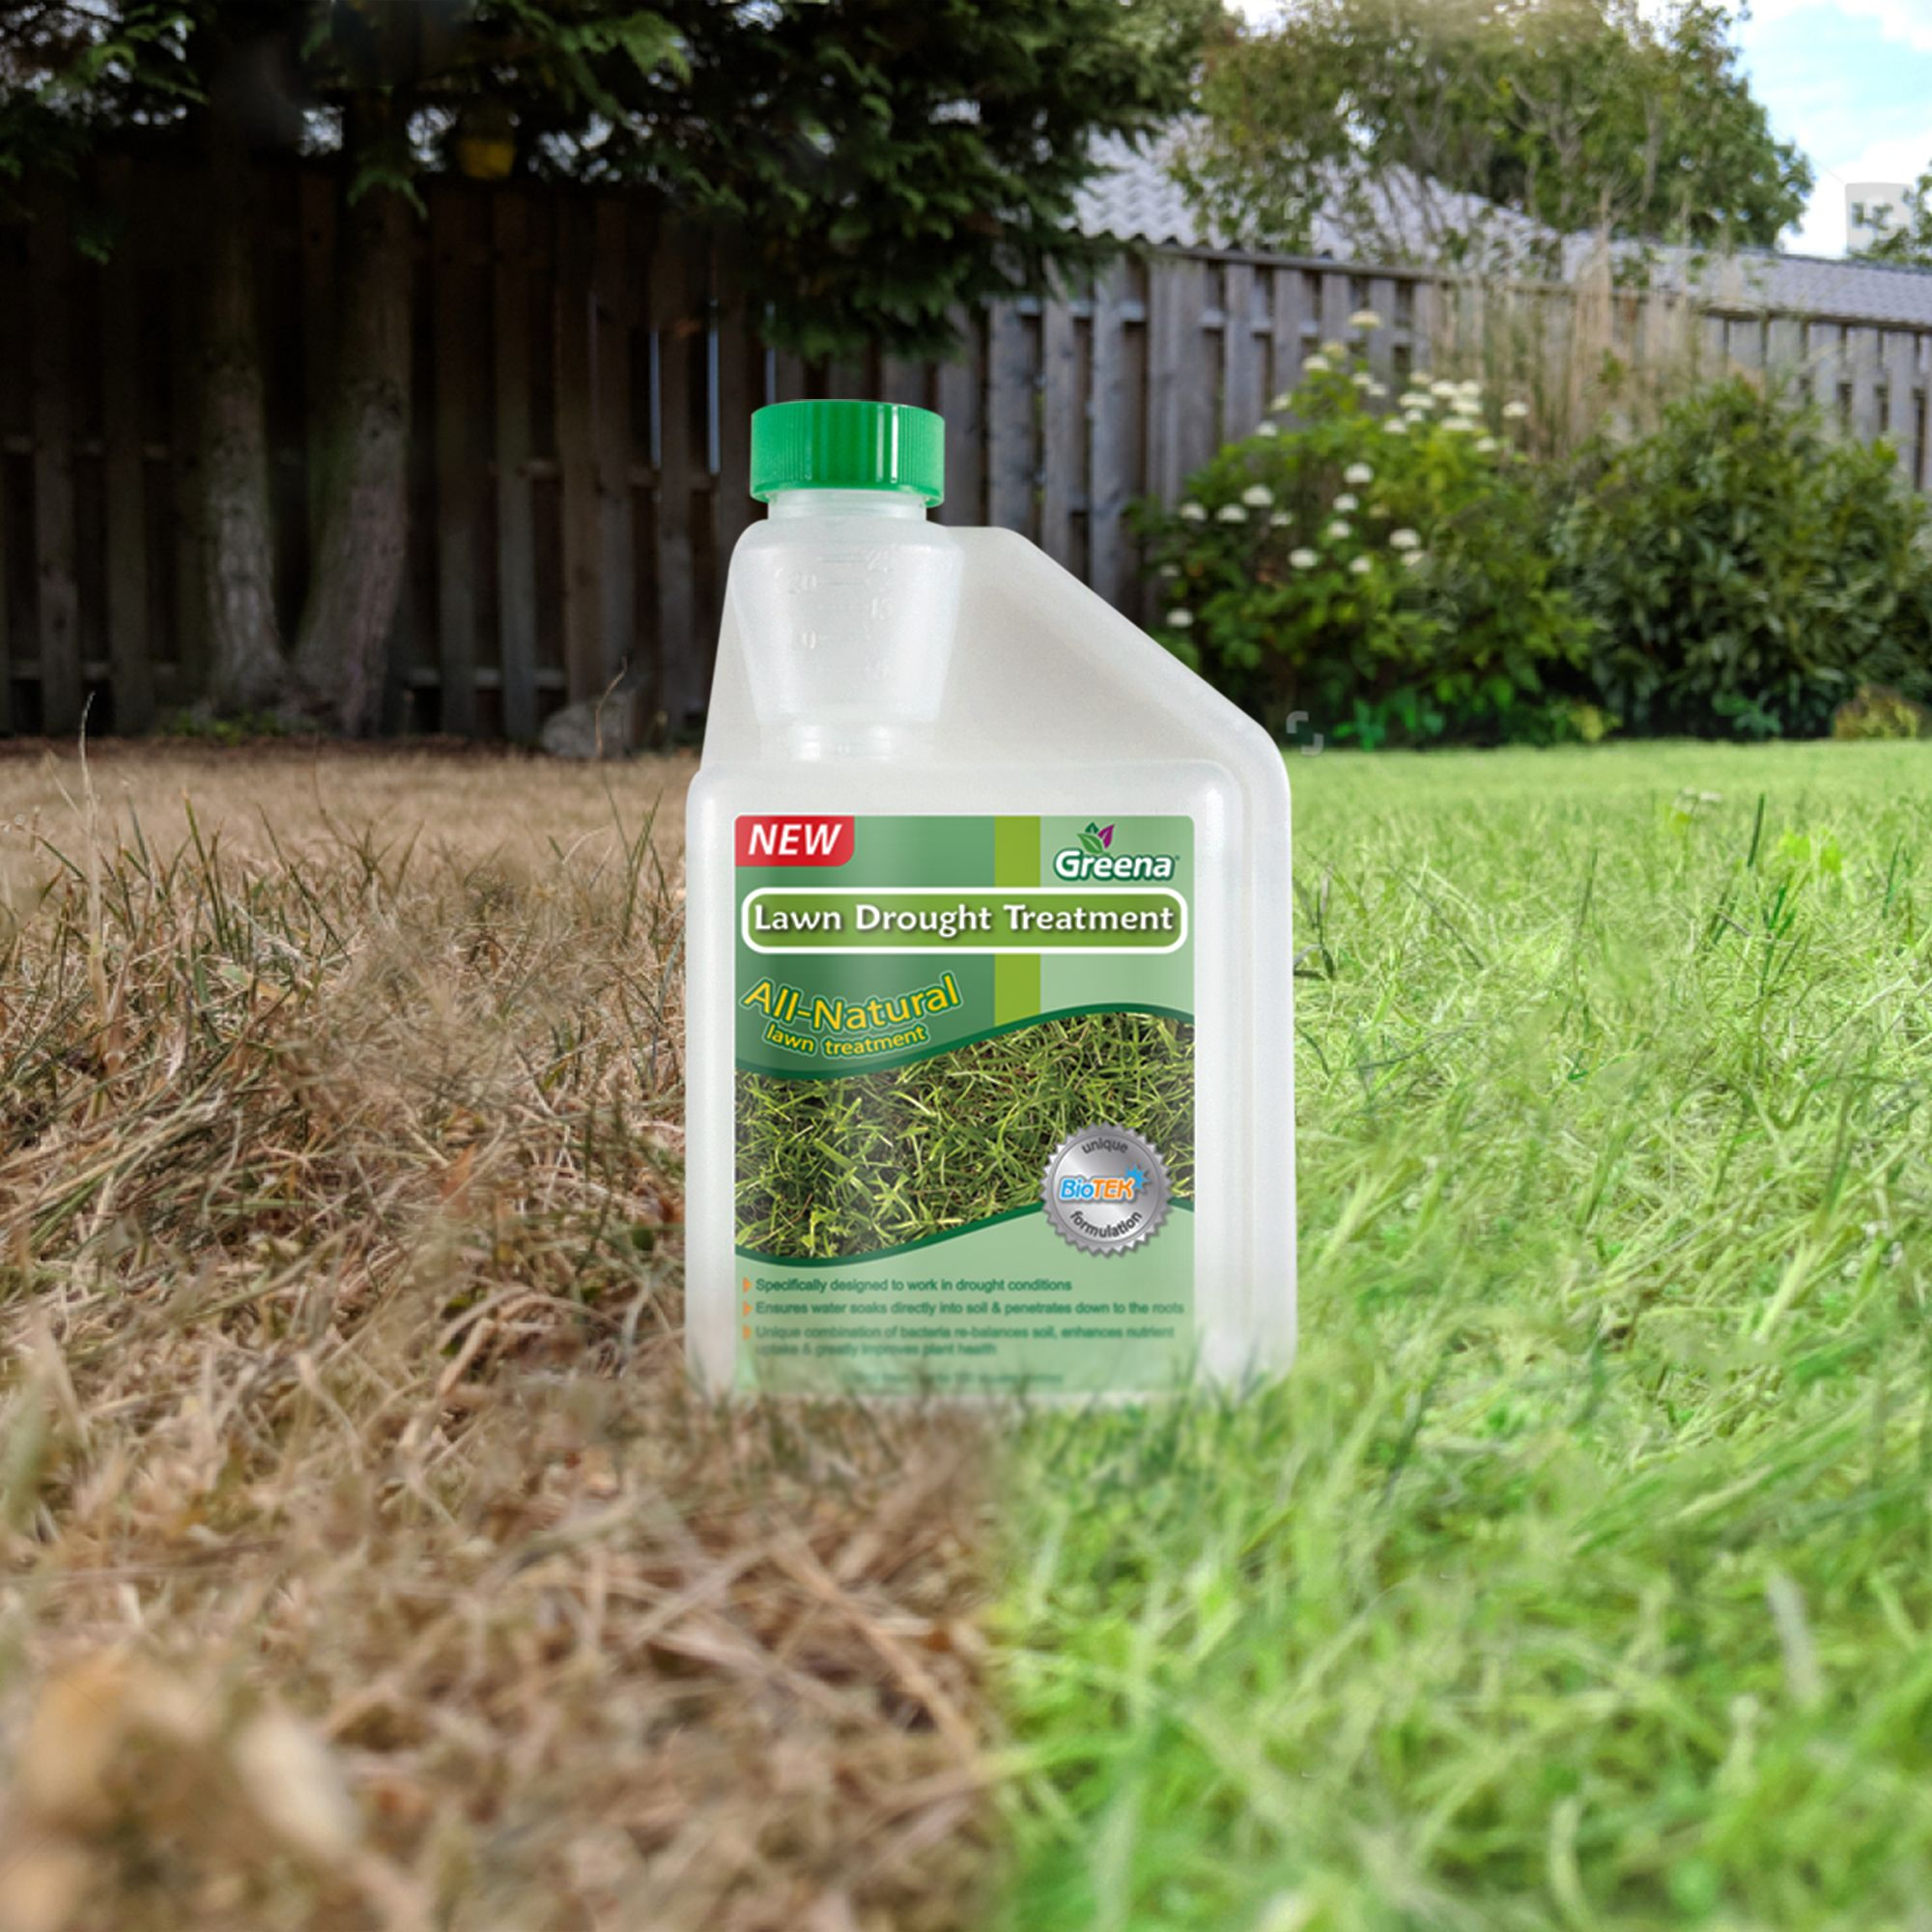 All Natural Lawn Drought Treatment £7.99